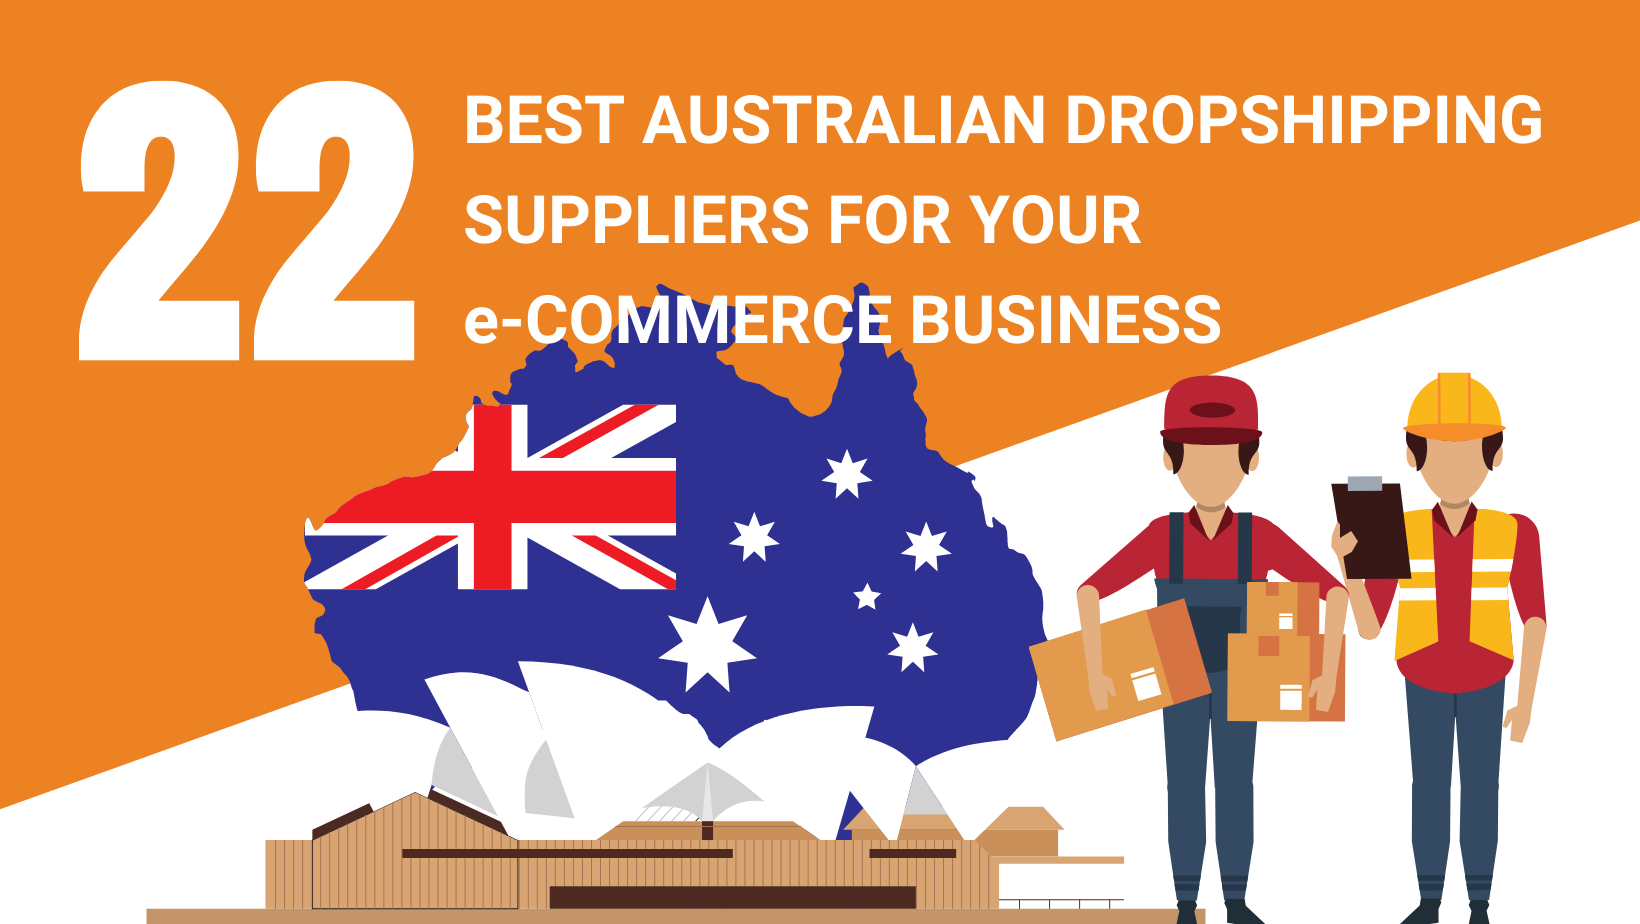 22 BEST AUSTRALIAN DROPSHIPPING SUPPLIERS FOR YOUR E-COMMERCE BUSINESS